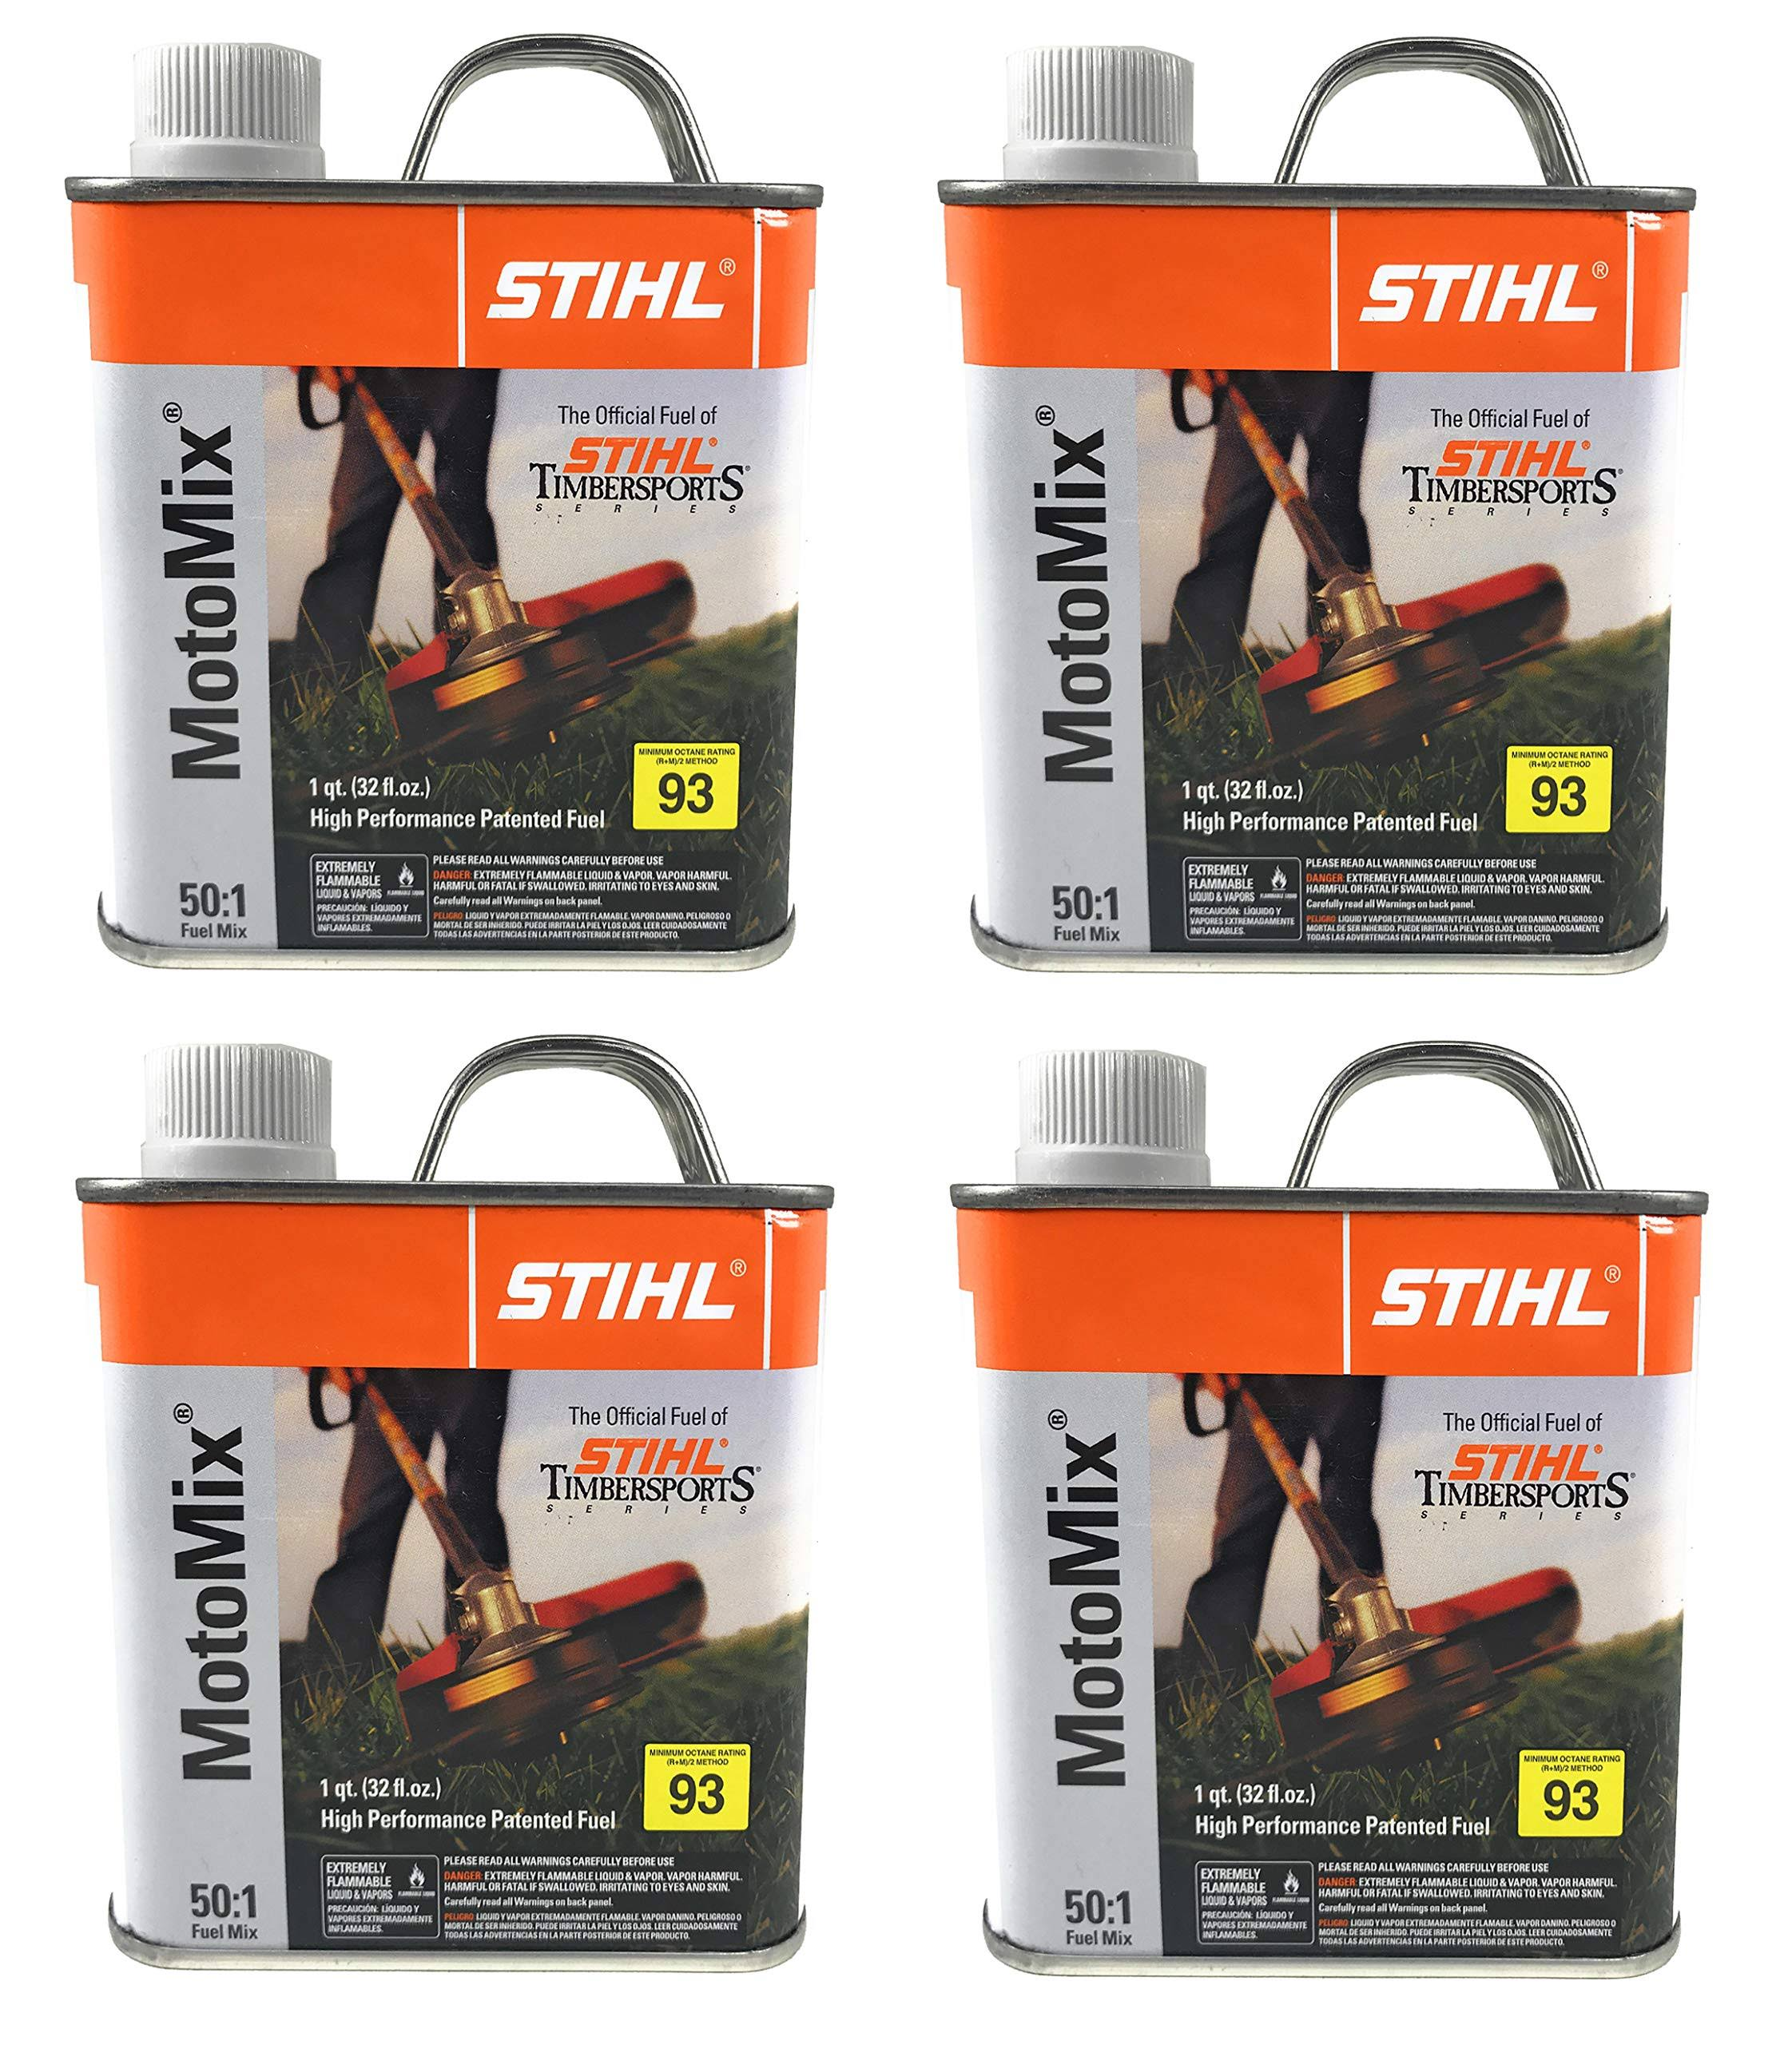 Stihl 7010 871 0203 Motomix 50:1 2 Cycle Premix Fuel, Pack of 4